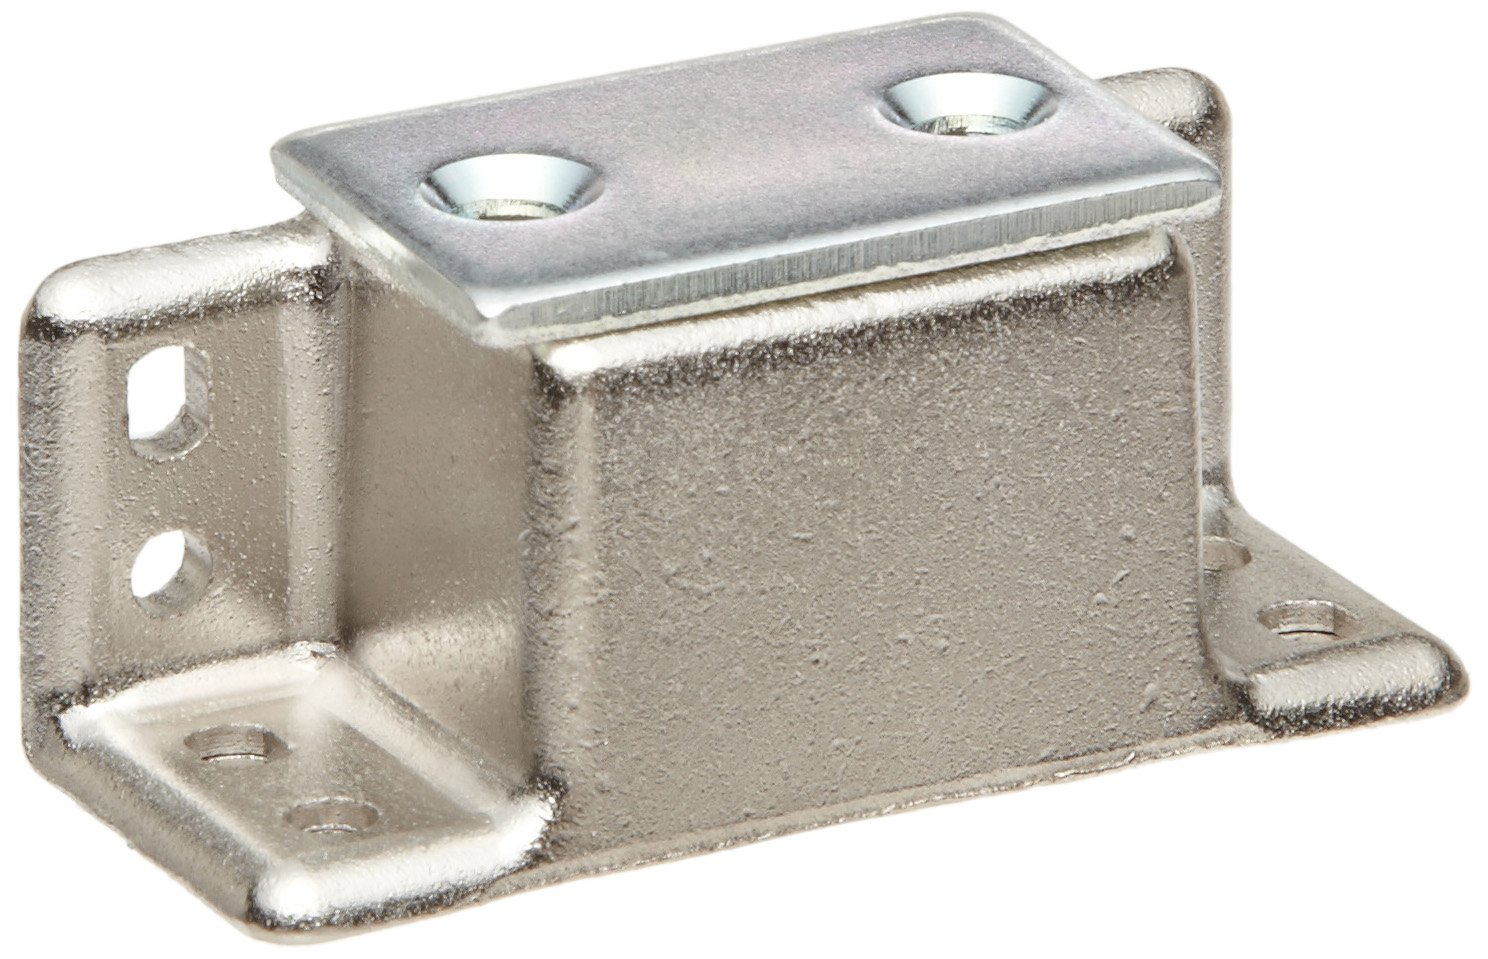 Zinc Surface Mount Heavy Duty Magnetic Catch, 15.4lbs Pull Power, 1-31/32'' Length x 27/32'' Width x 25/32'' Height (Pack of 1)